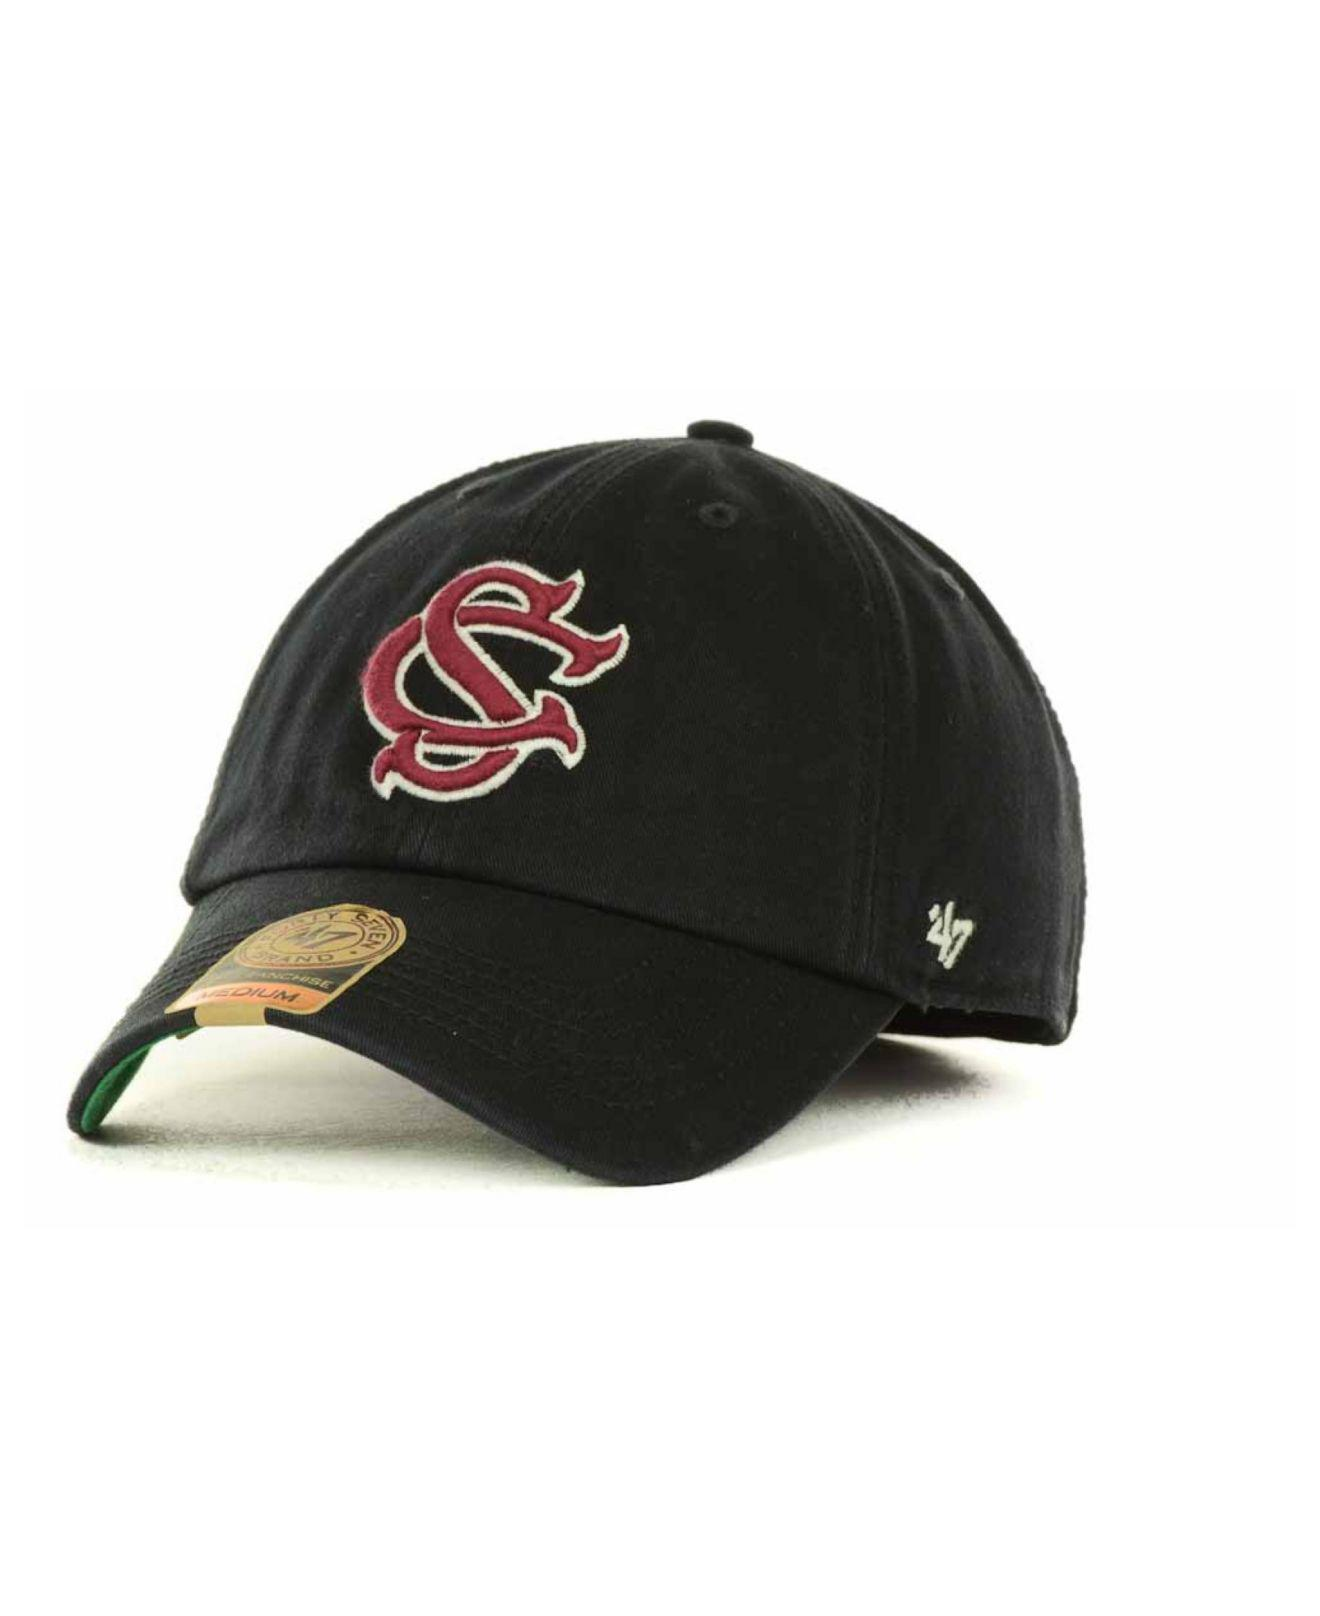 finest selection 96a5e 3d77c 47 Brand. Men s Black South Carolina Gamecocks Franchise Cap